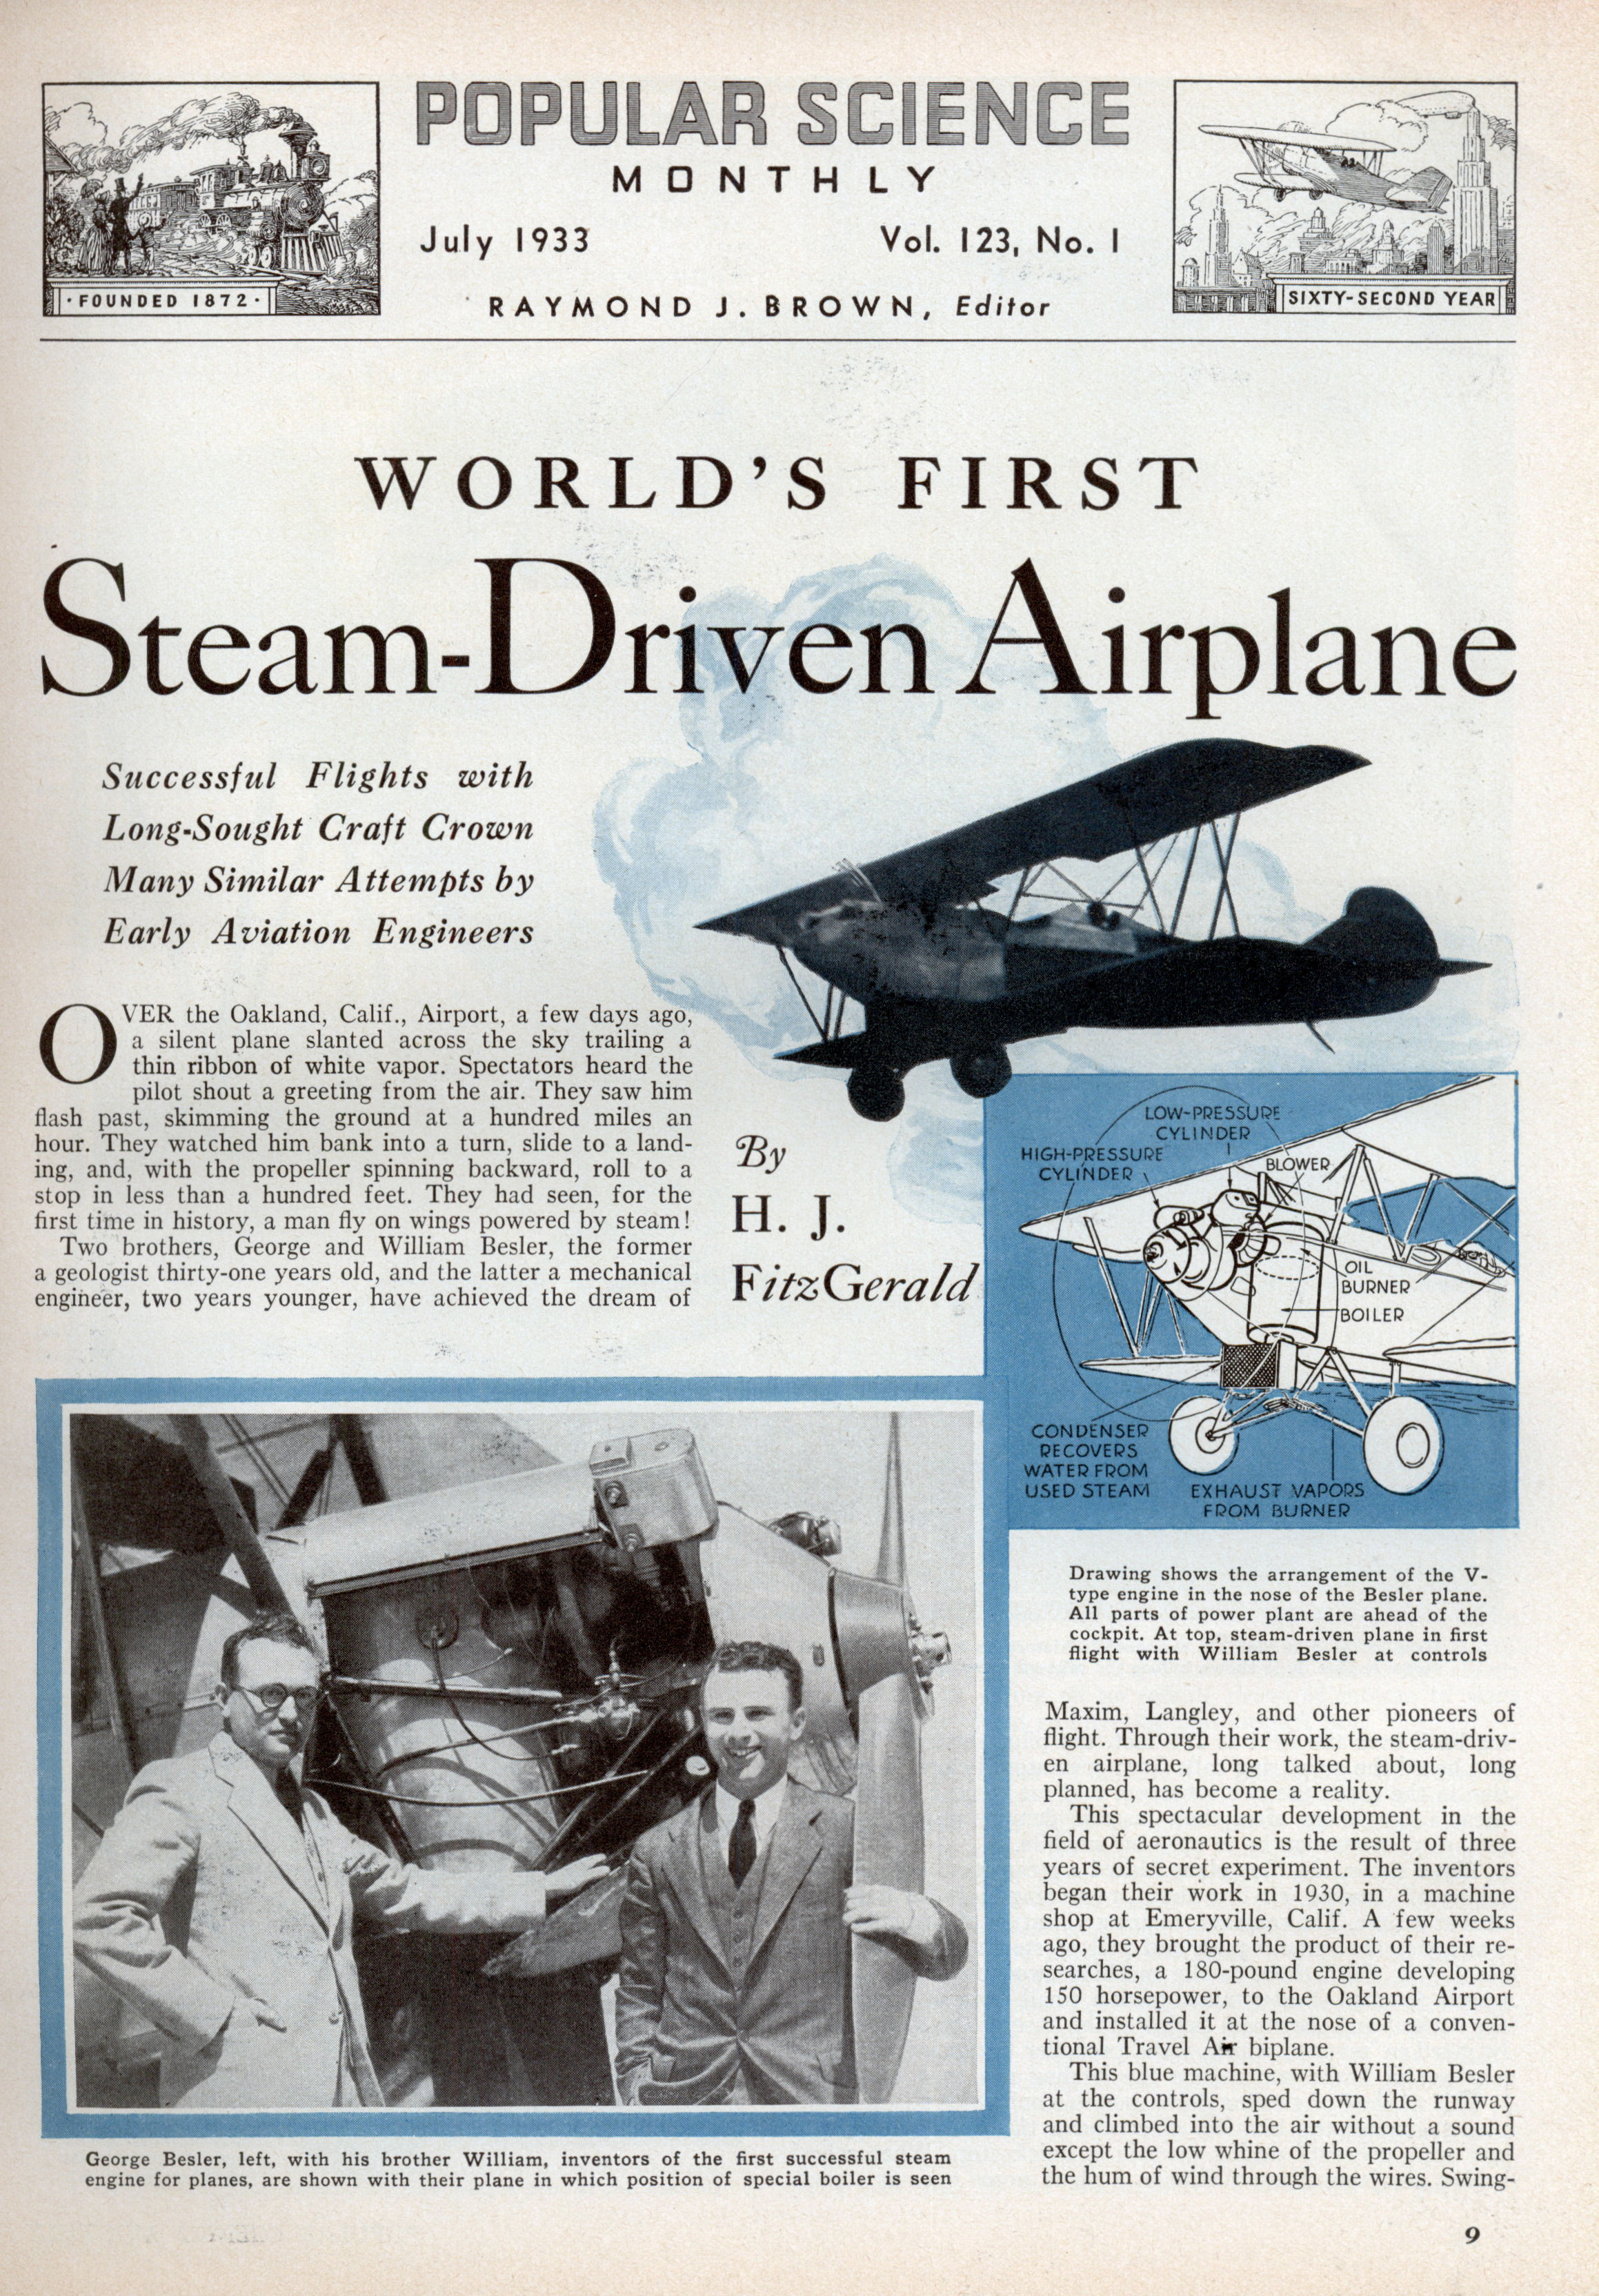 https://upload.wikimedia.org/wikipedia/commons/8/88/Steam_plane_0.jpg